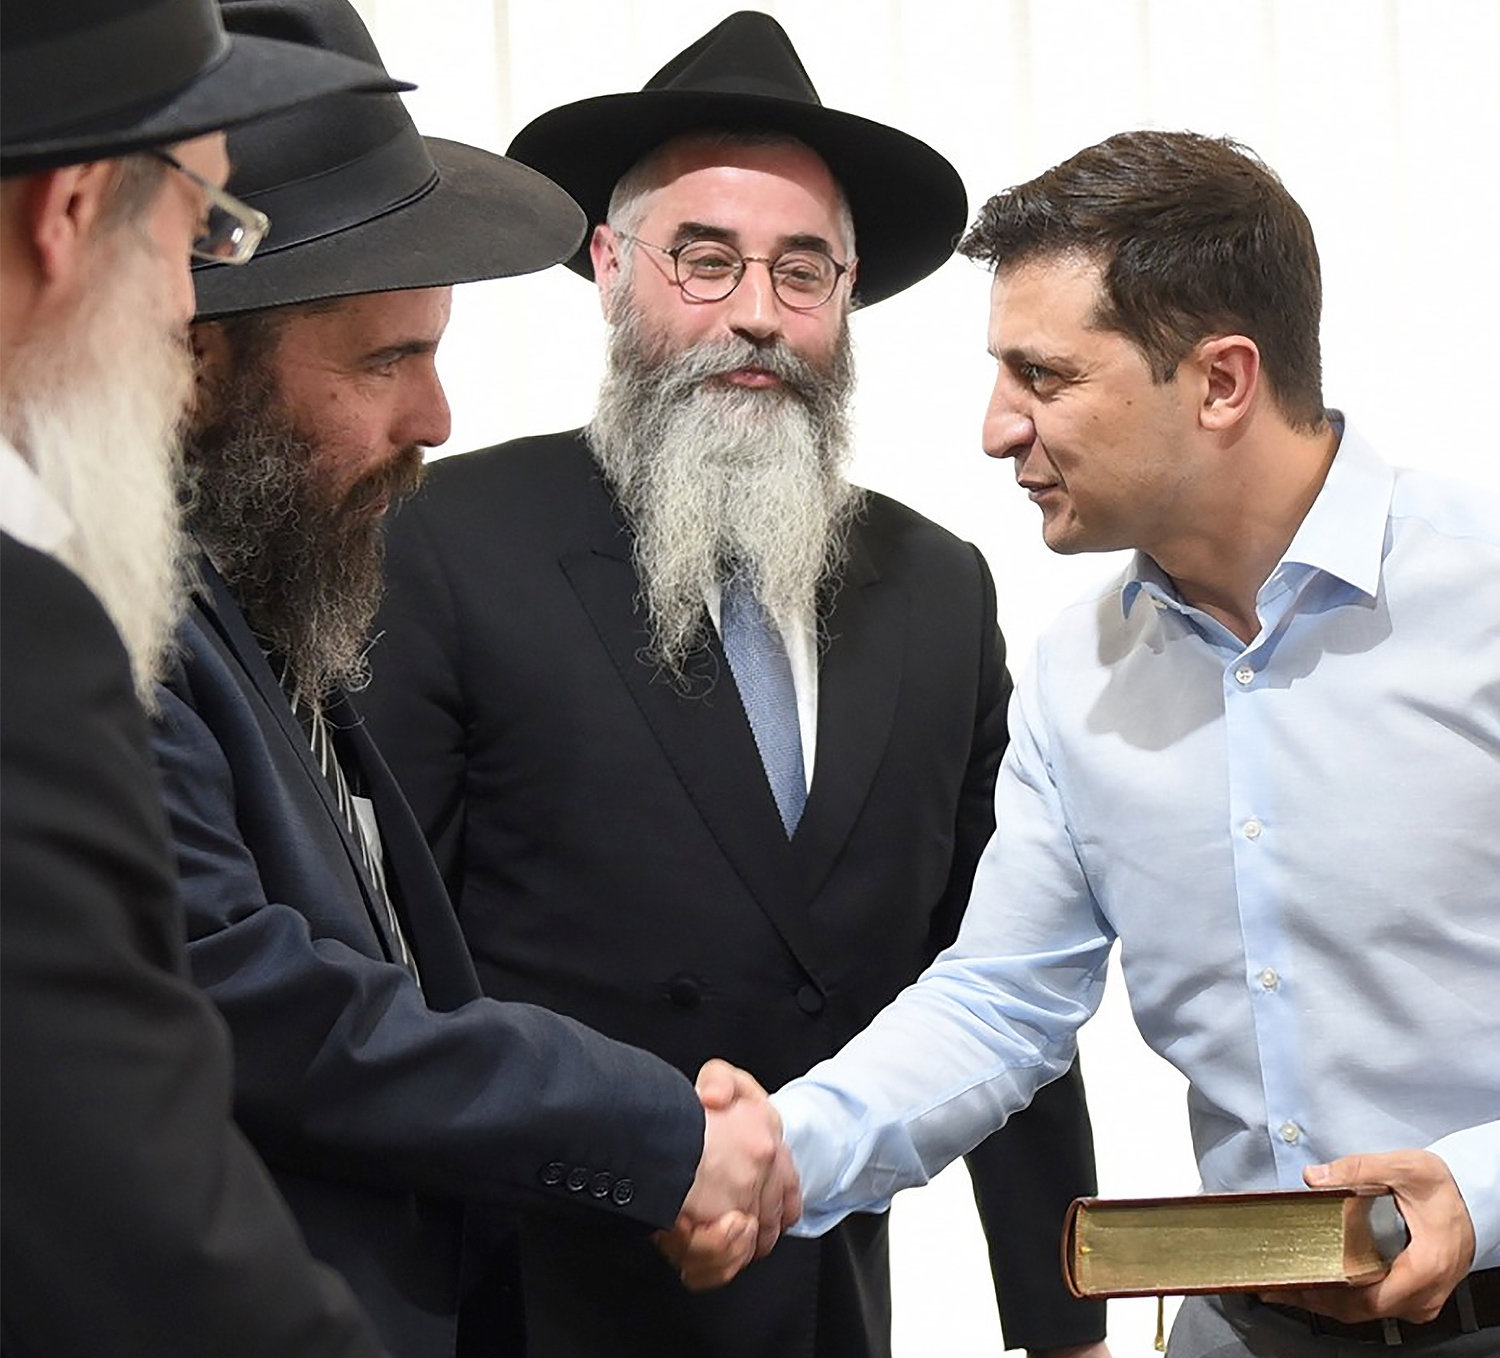 Ukrainian President Vlodymyr Zelensky meets with rabbis in Kyiv on May 6.